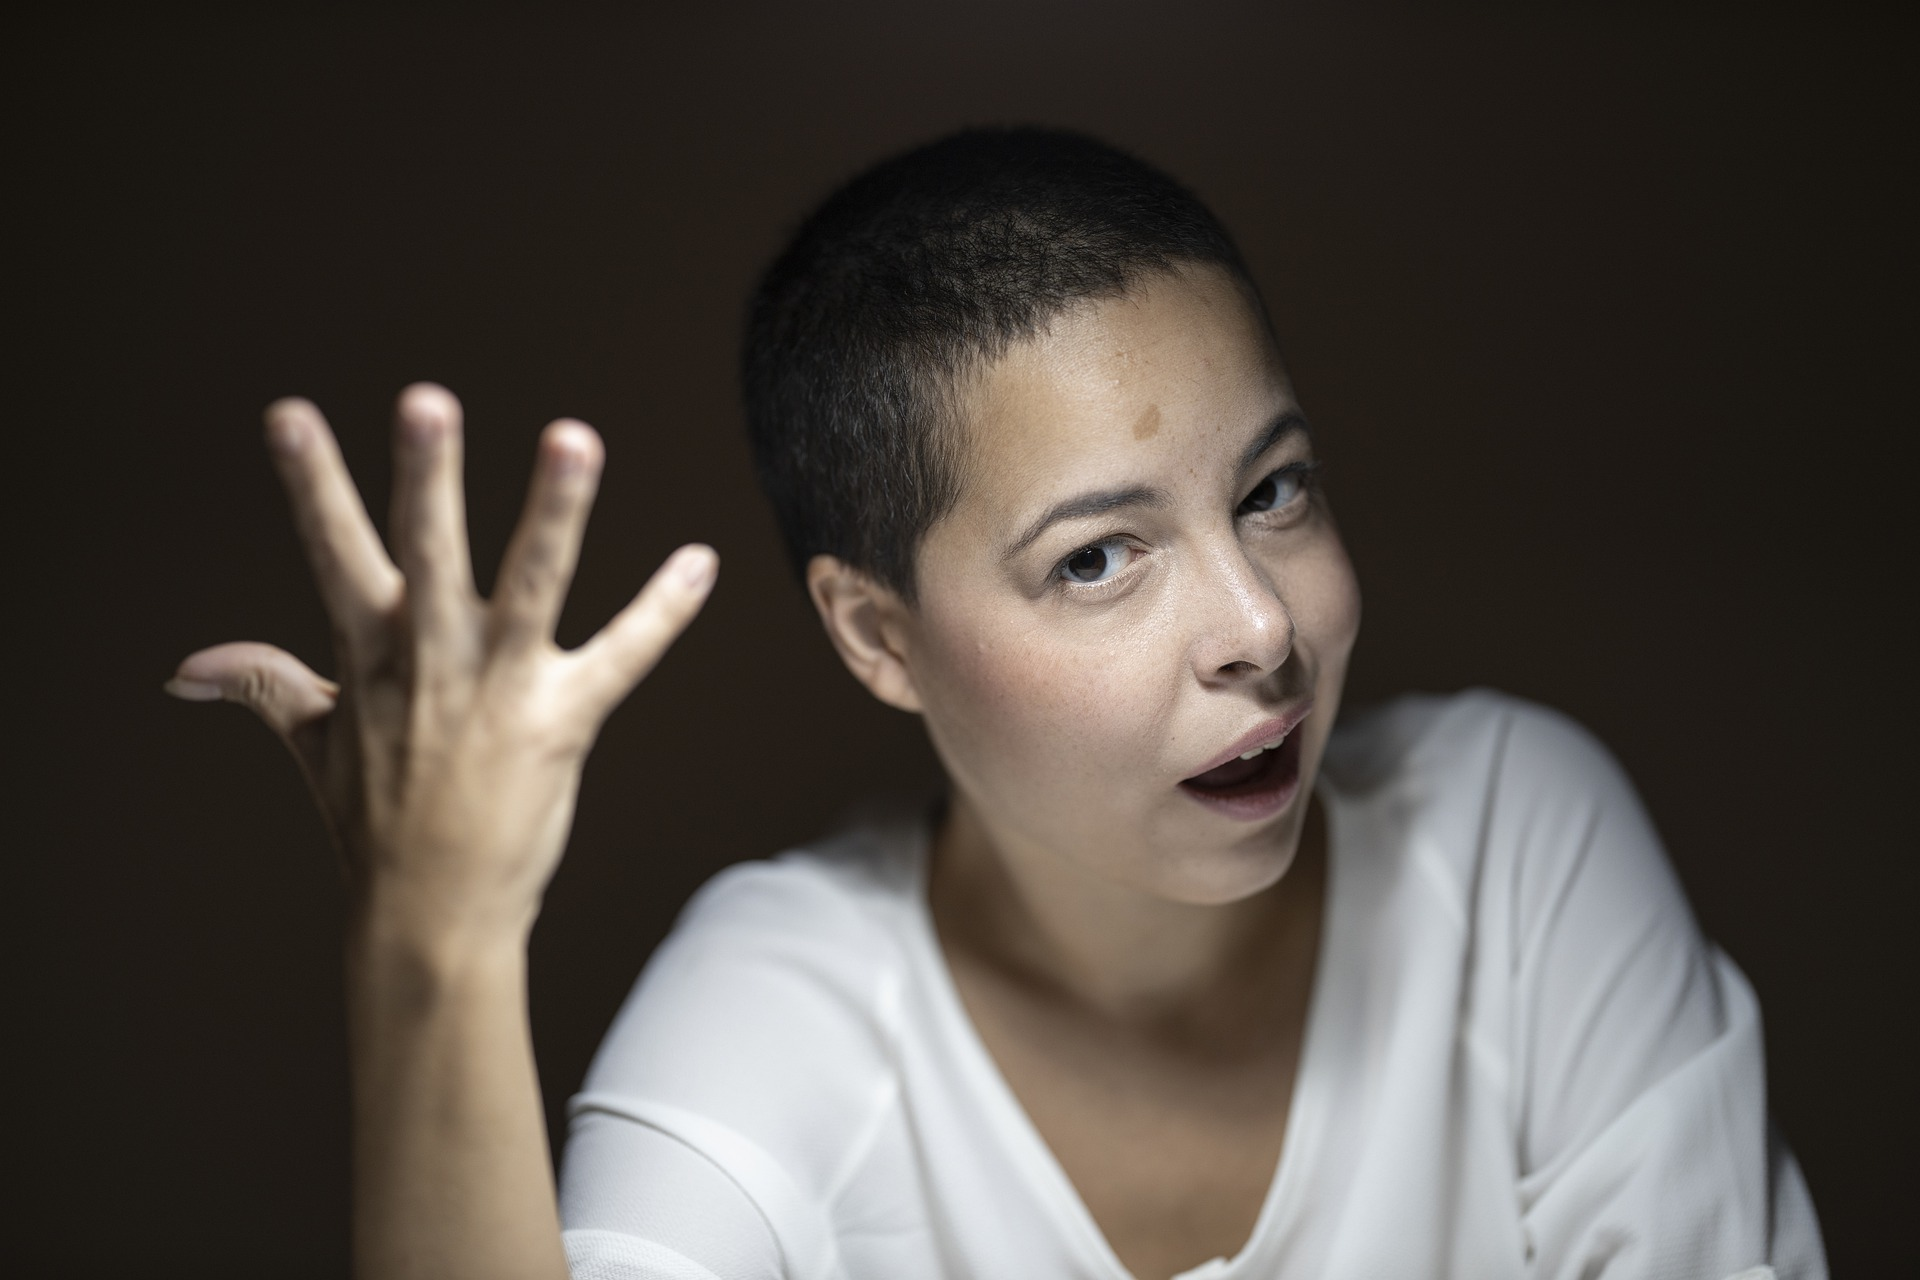 Woman with buzzed hair wearing white shirt looking perplexed